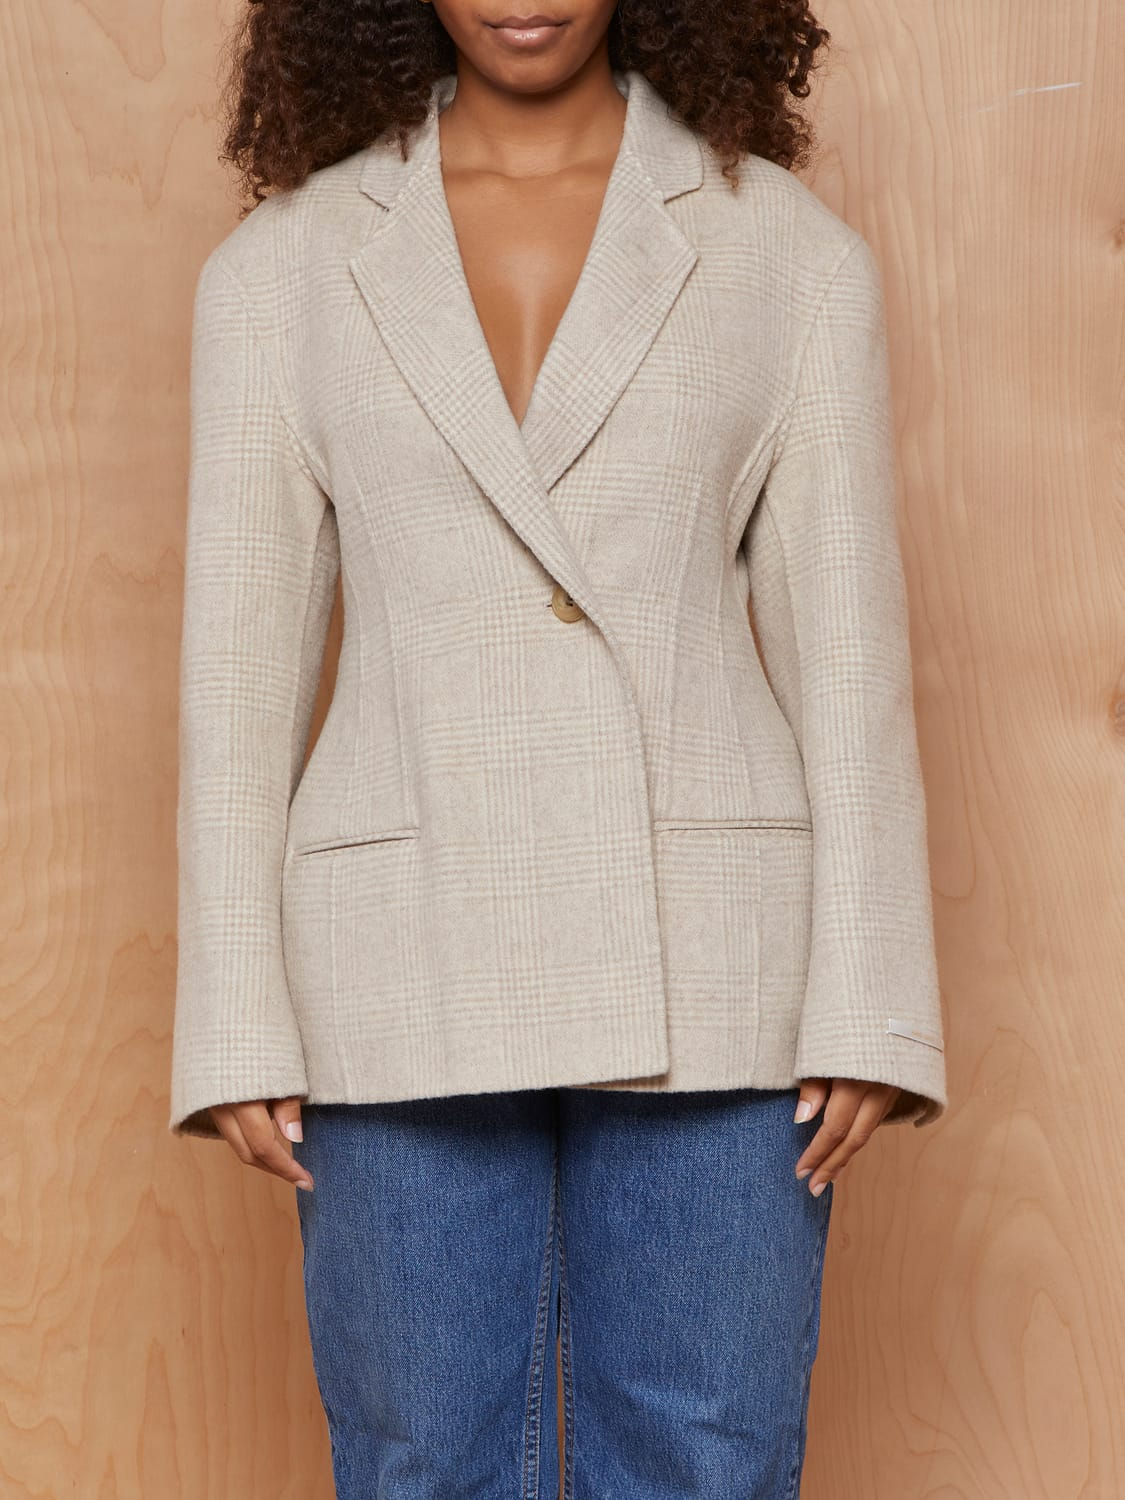 Love You So Much Beige Wool Blazer